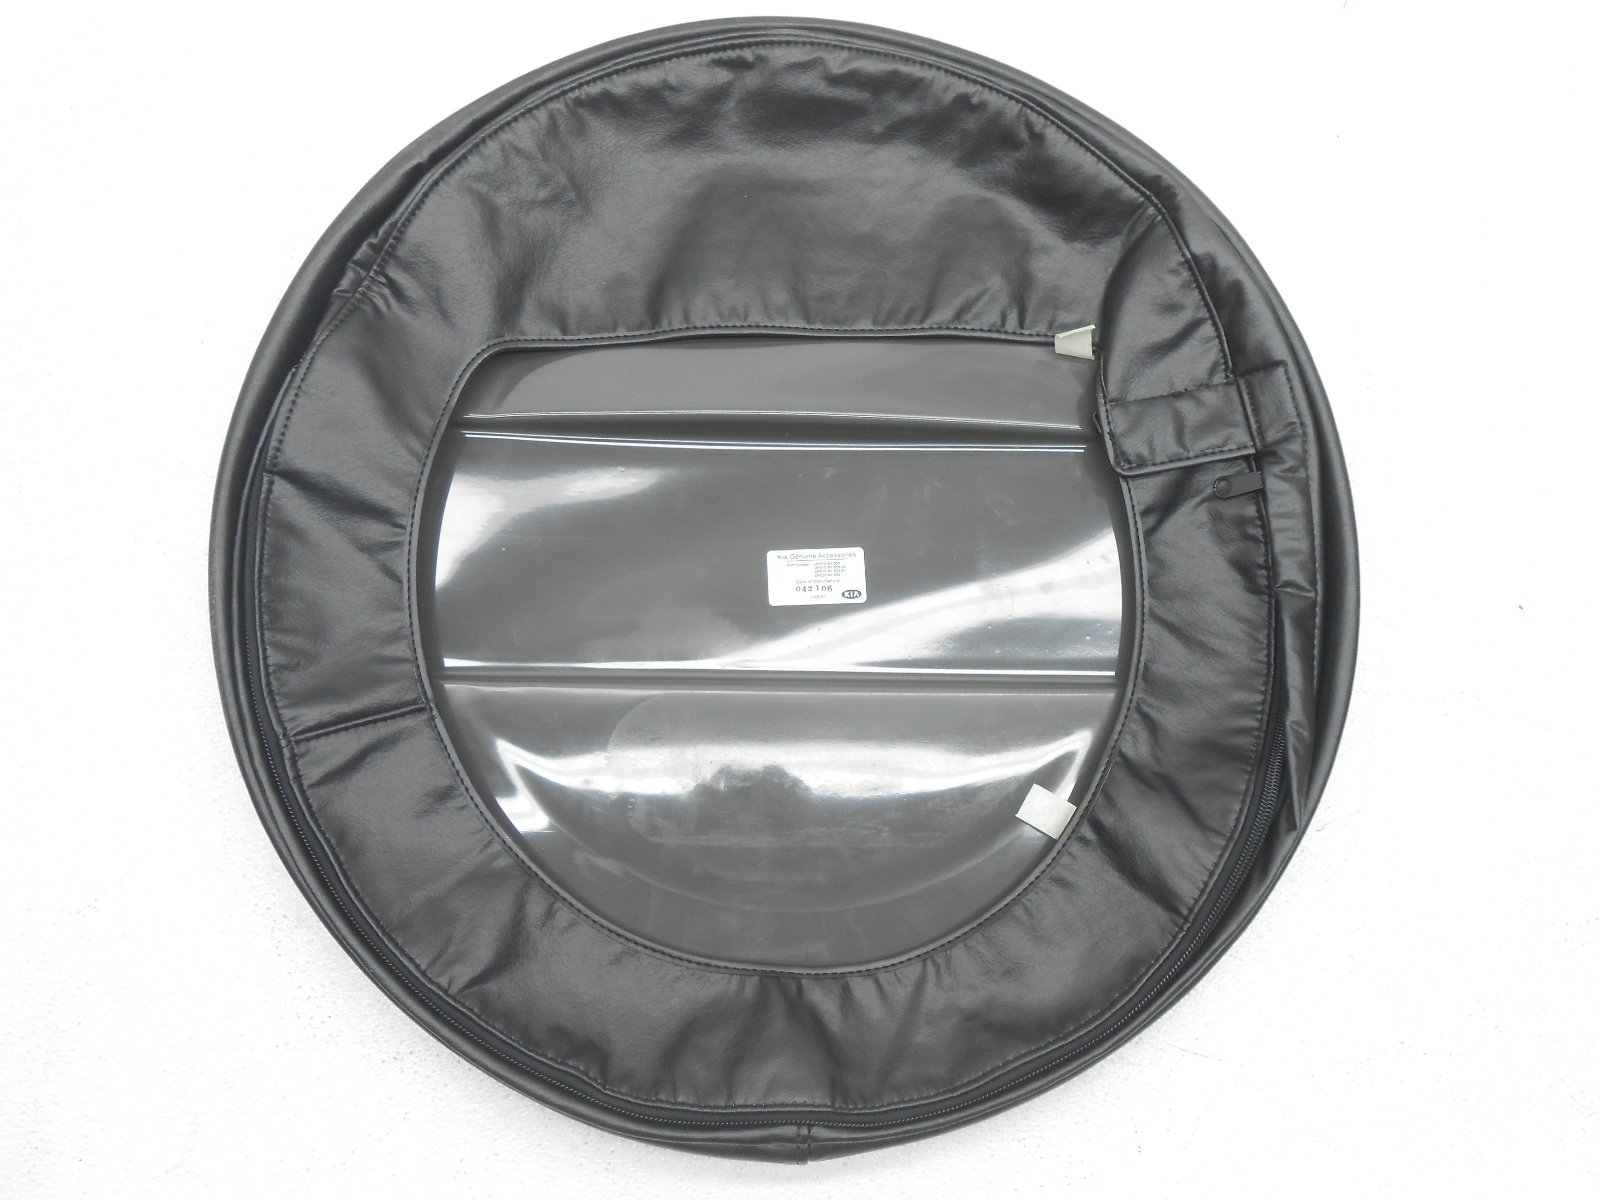 New OEM 2001 Kia Sportage Spare Tire Cover - UP01L-AY009